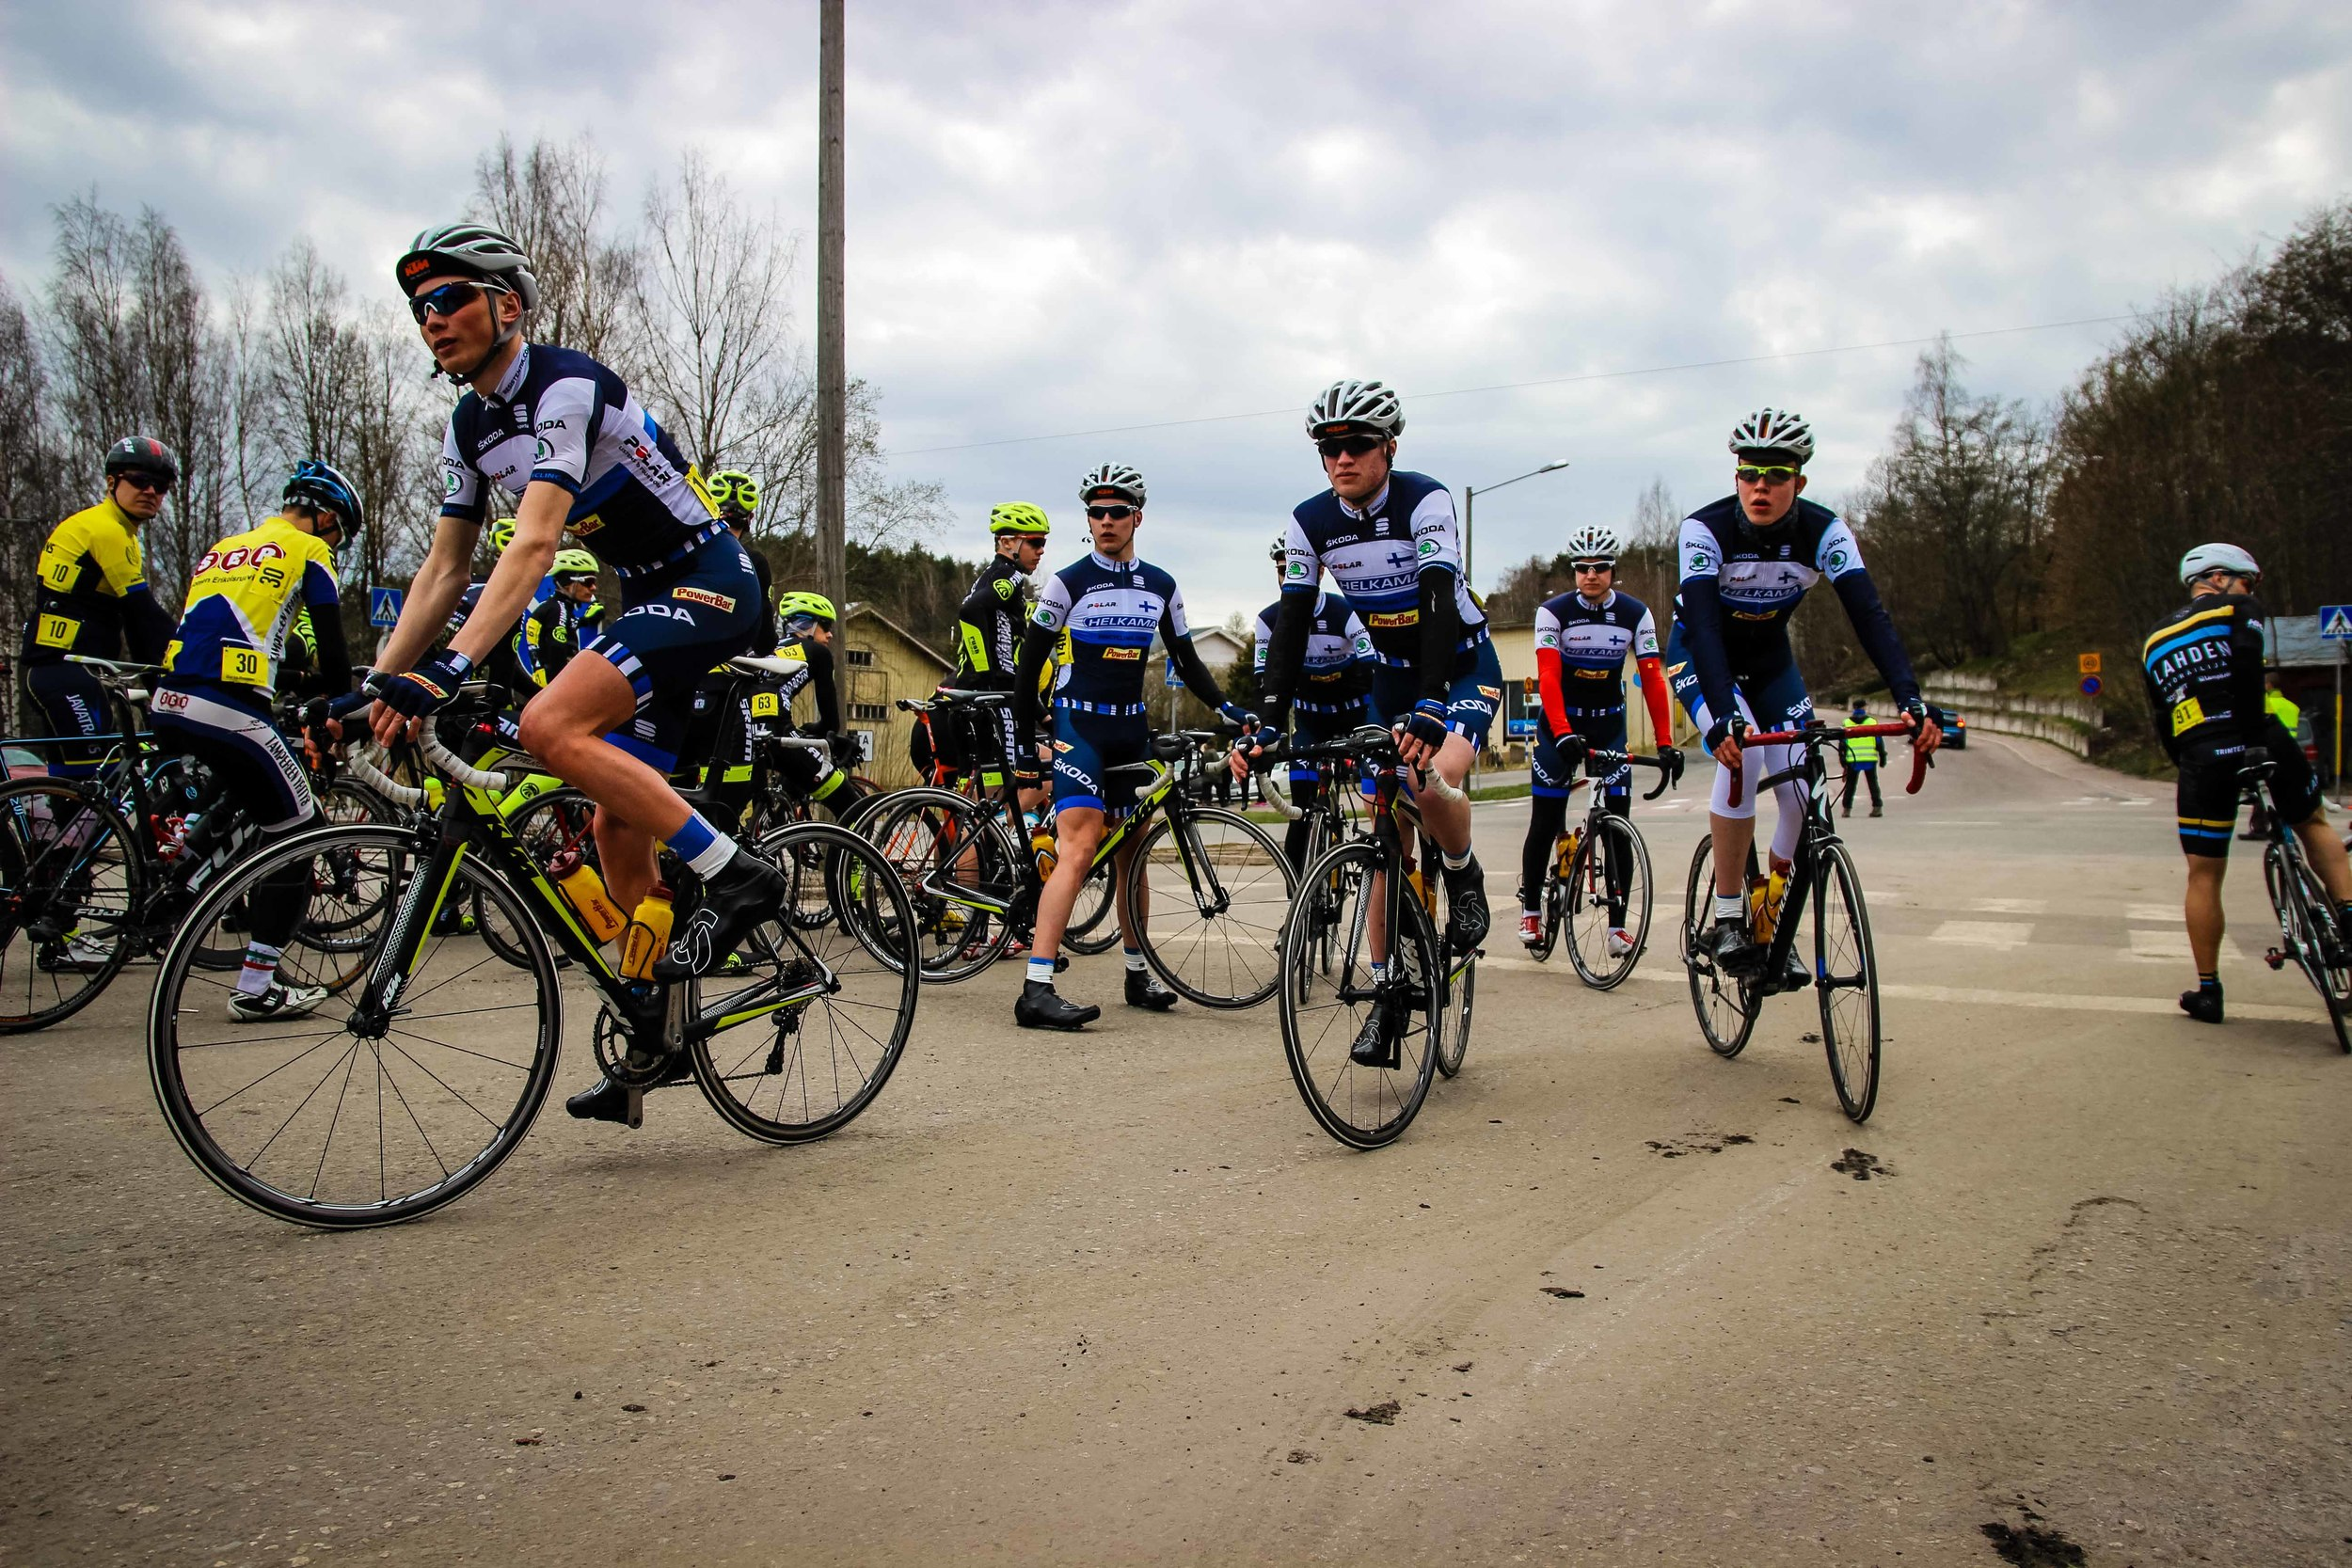 Cyclists lining up for the start